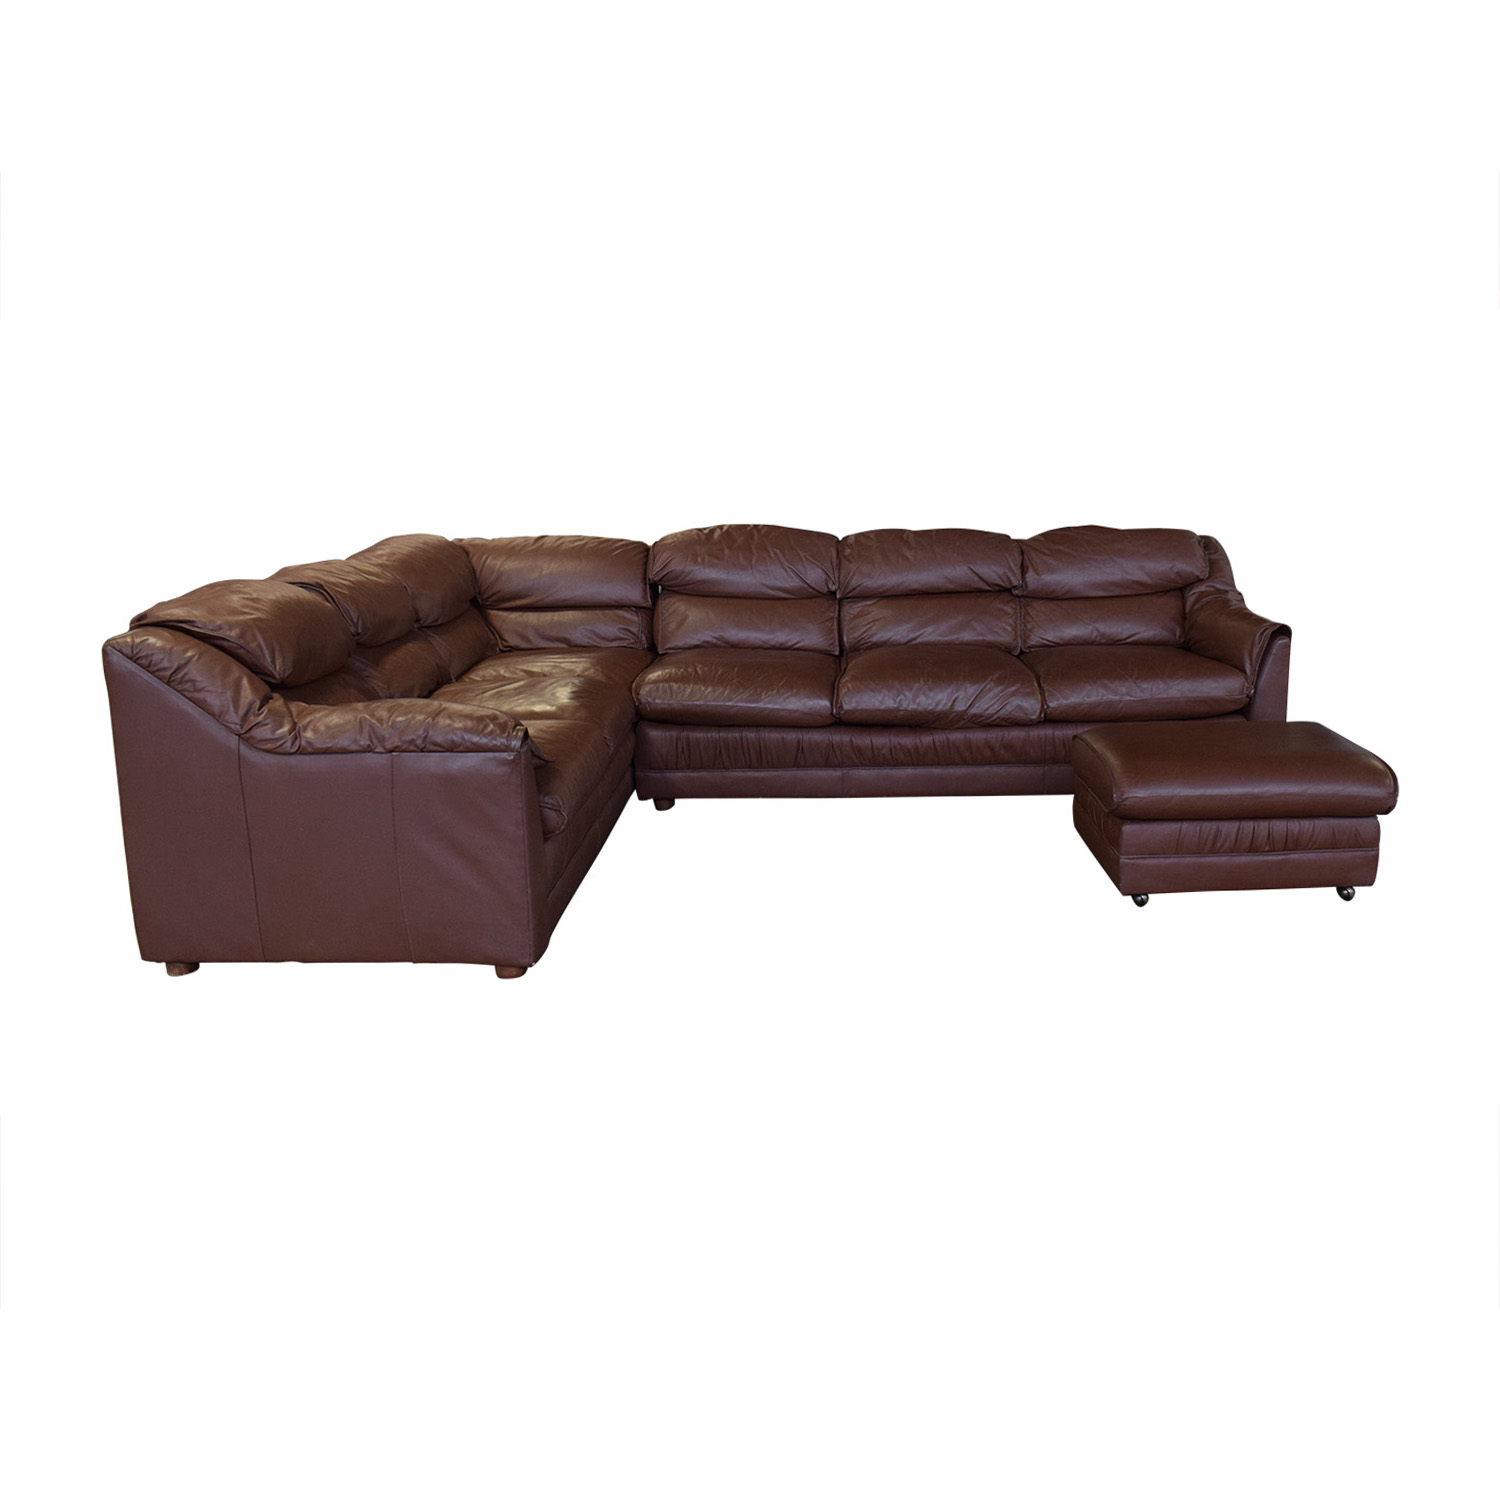 Emerson Leather Sectional And Ottoman / Sectionals